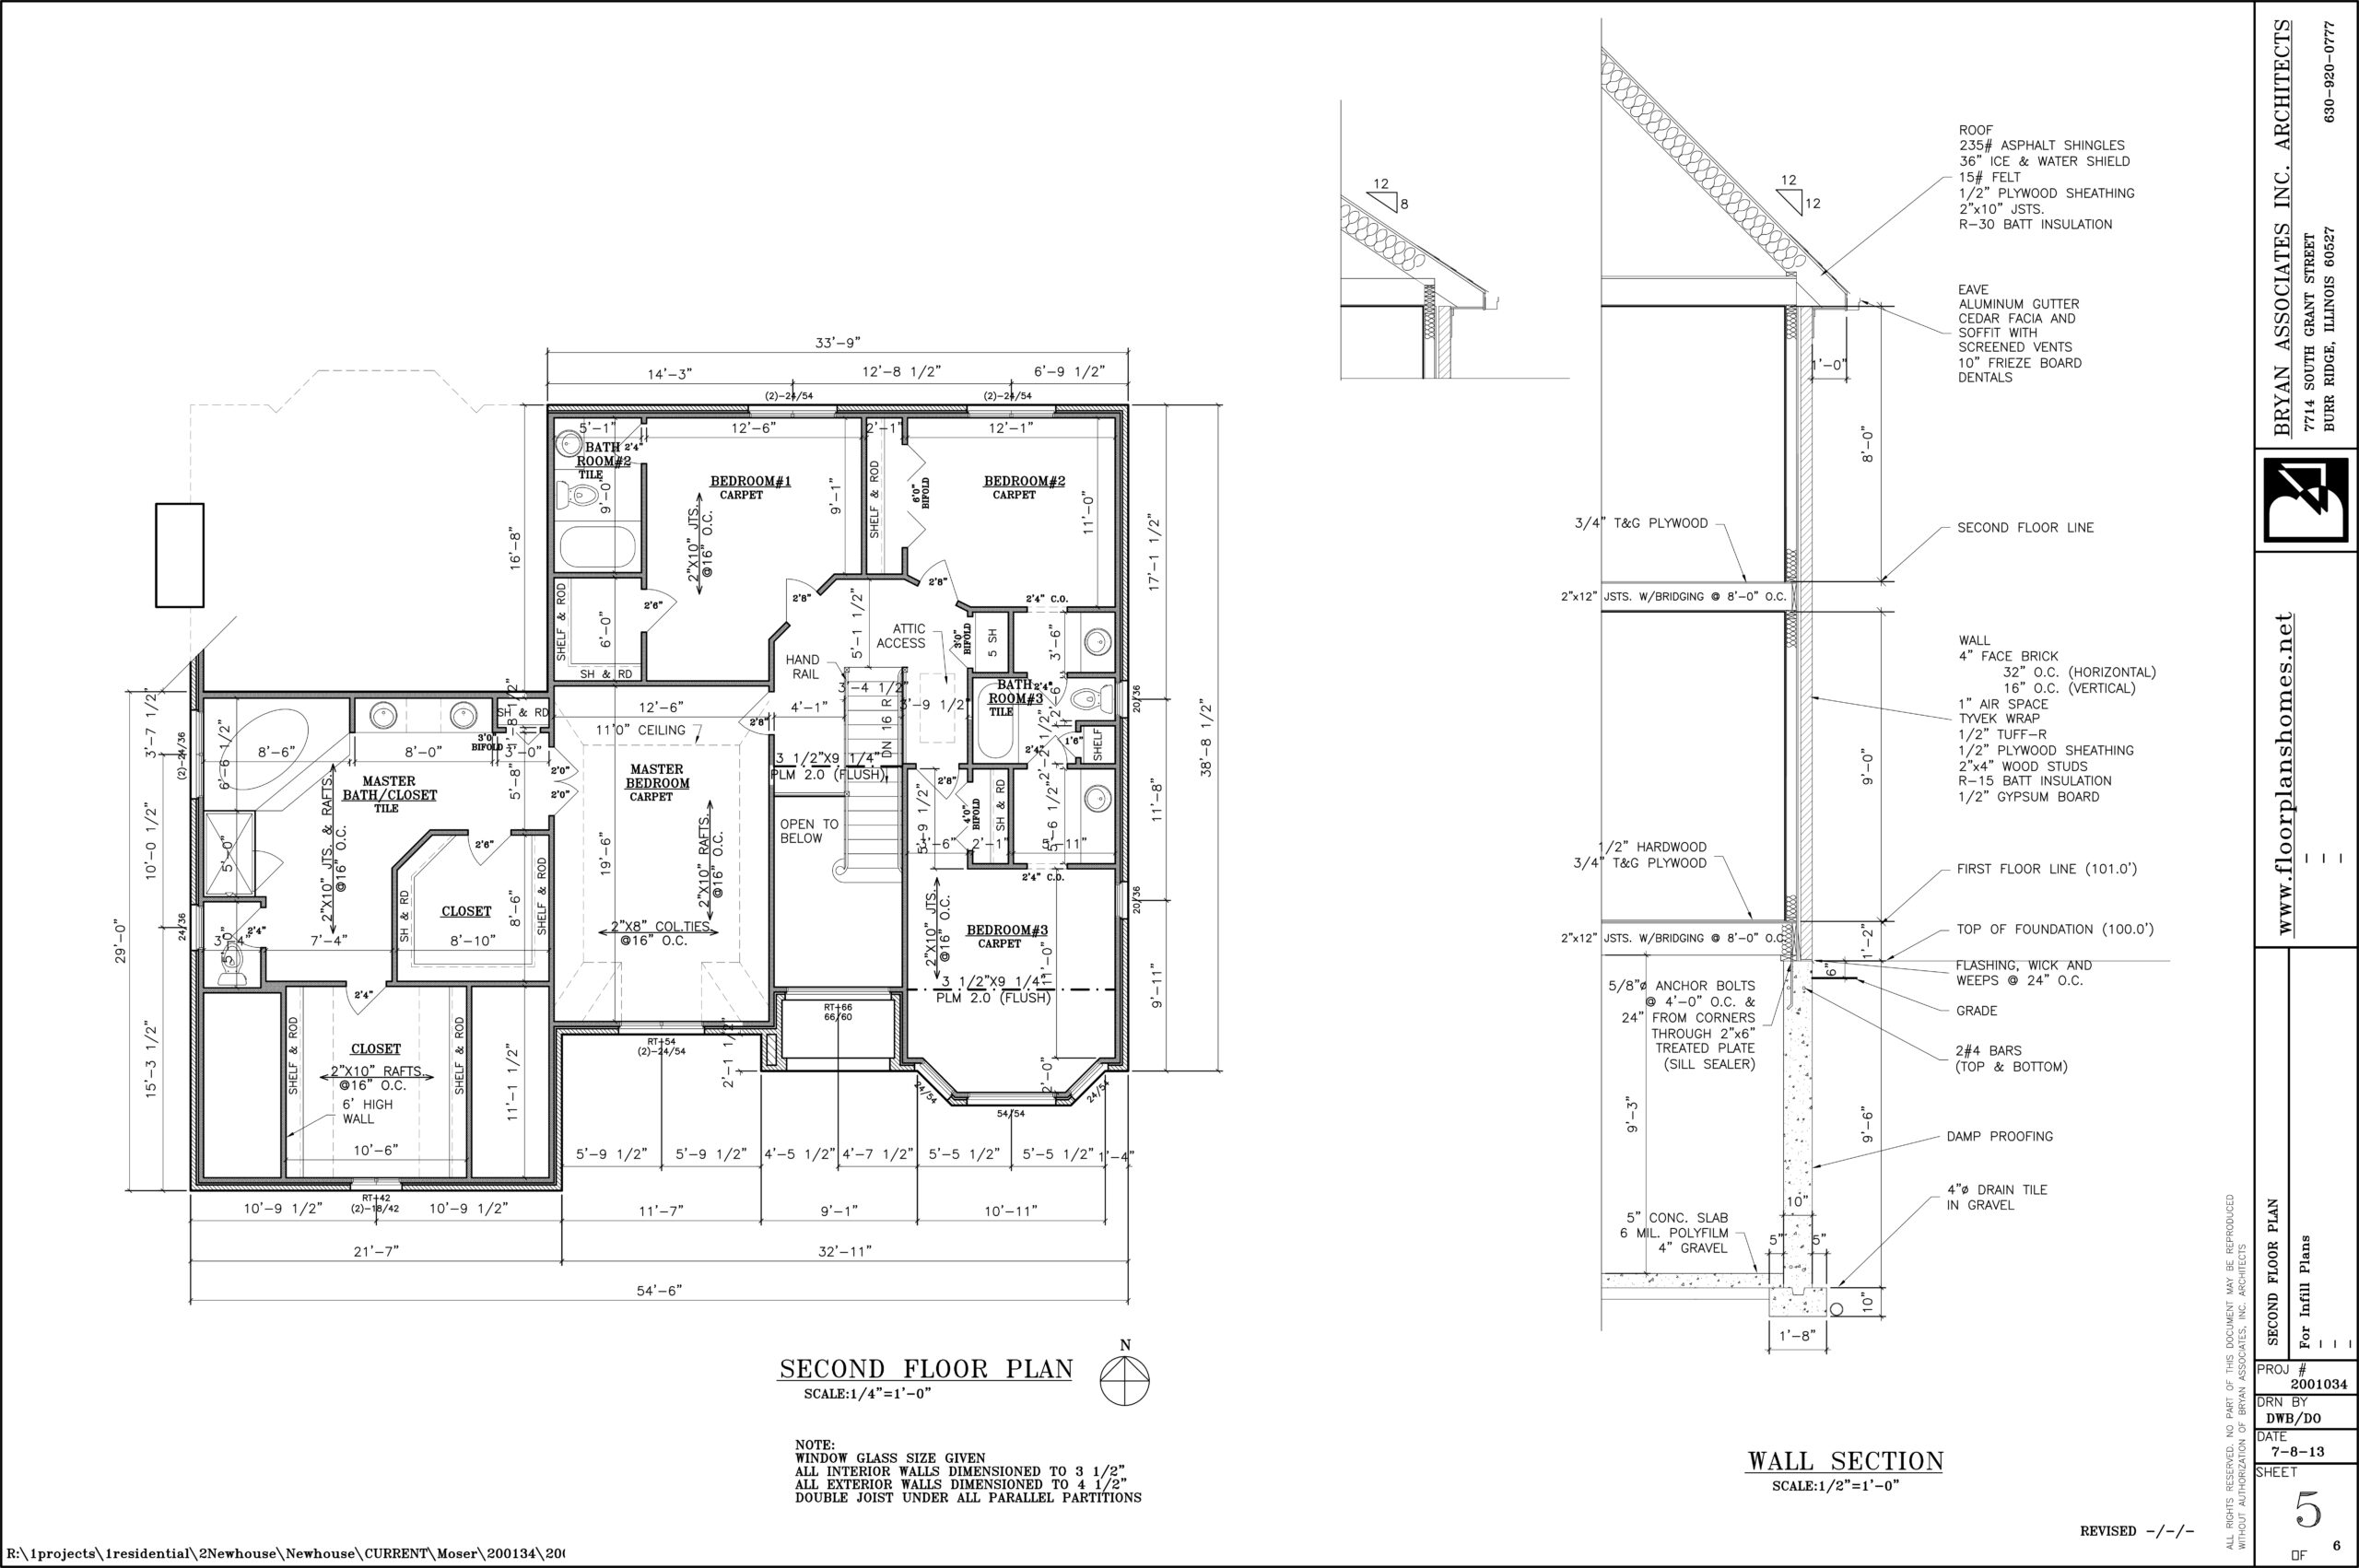 R:1projects1residential2NewhouseNewhouseCURRENTMoser20013